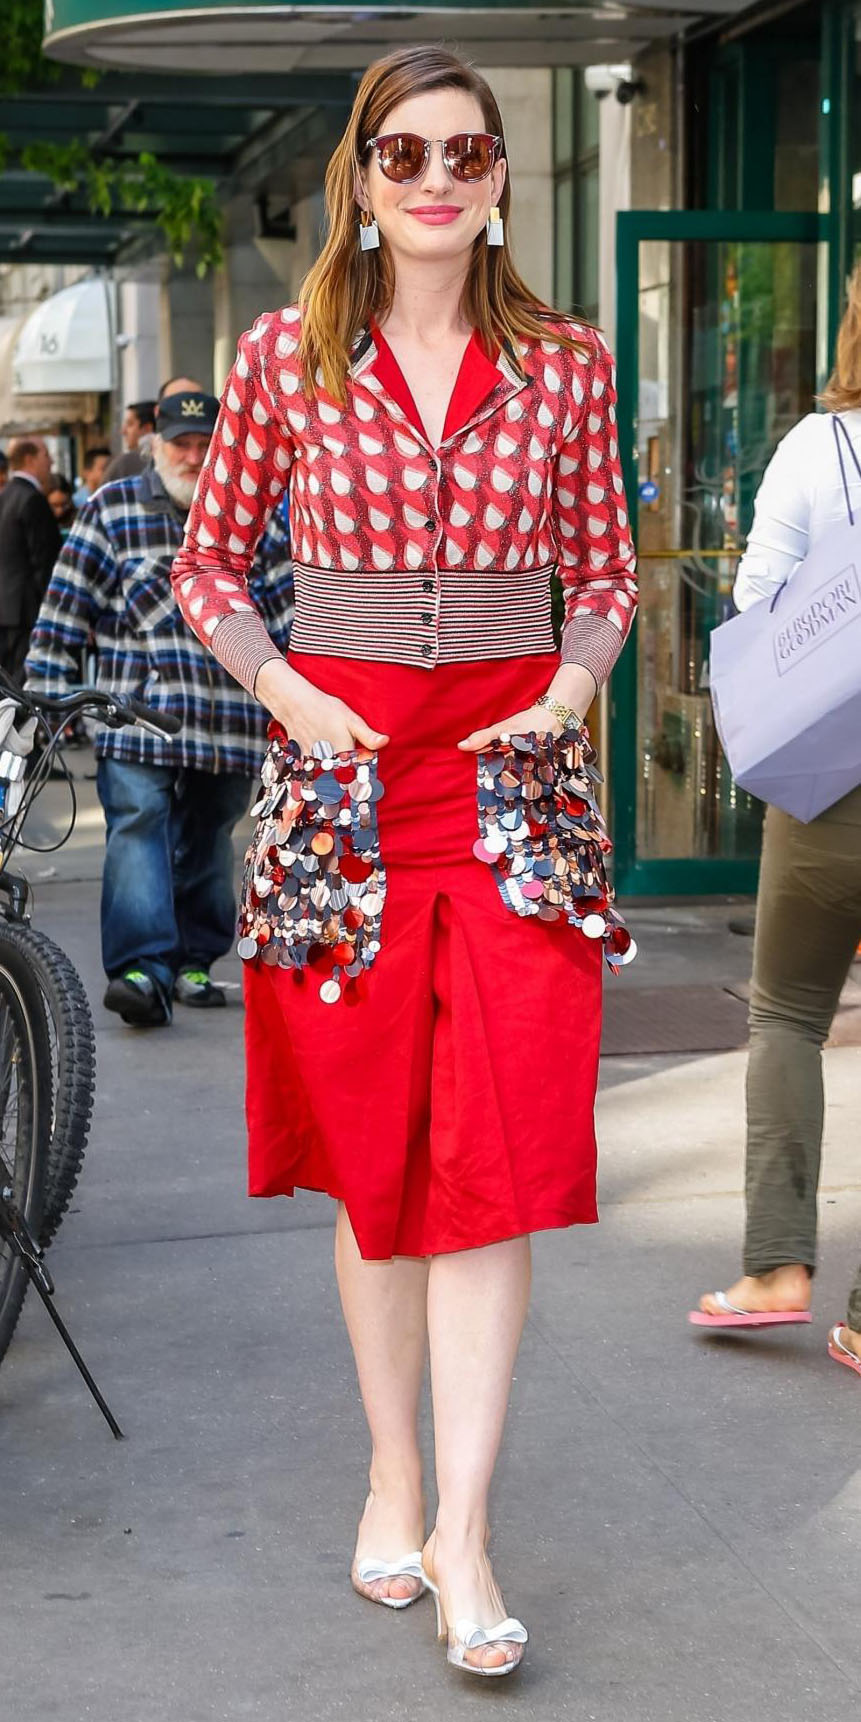 red-aline-skirt-red-cardigan-printed-earrings-hairr-sun-white-shoe-pumps-annehathaway-spring-summer-lunch.jpg